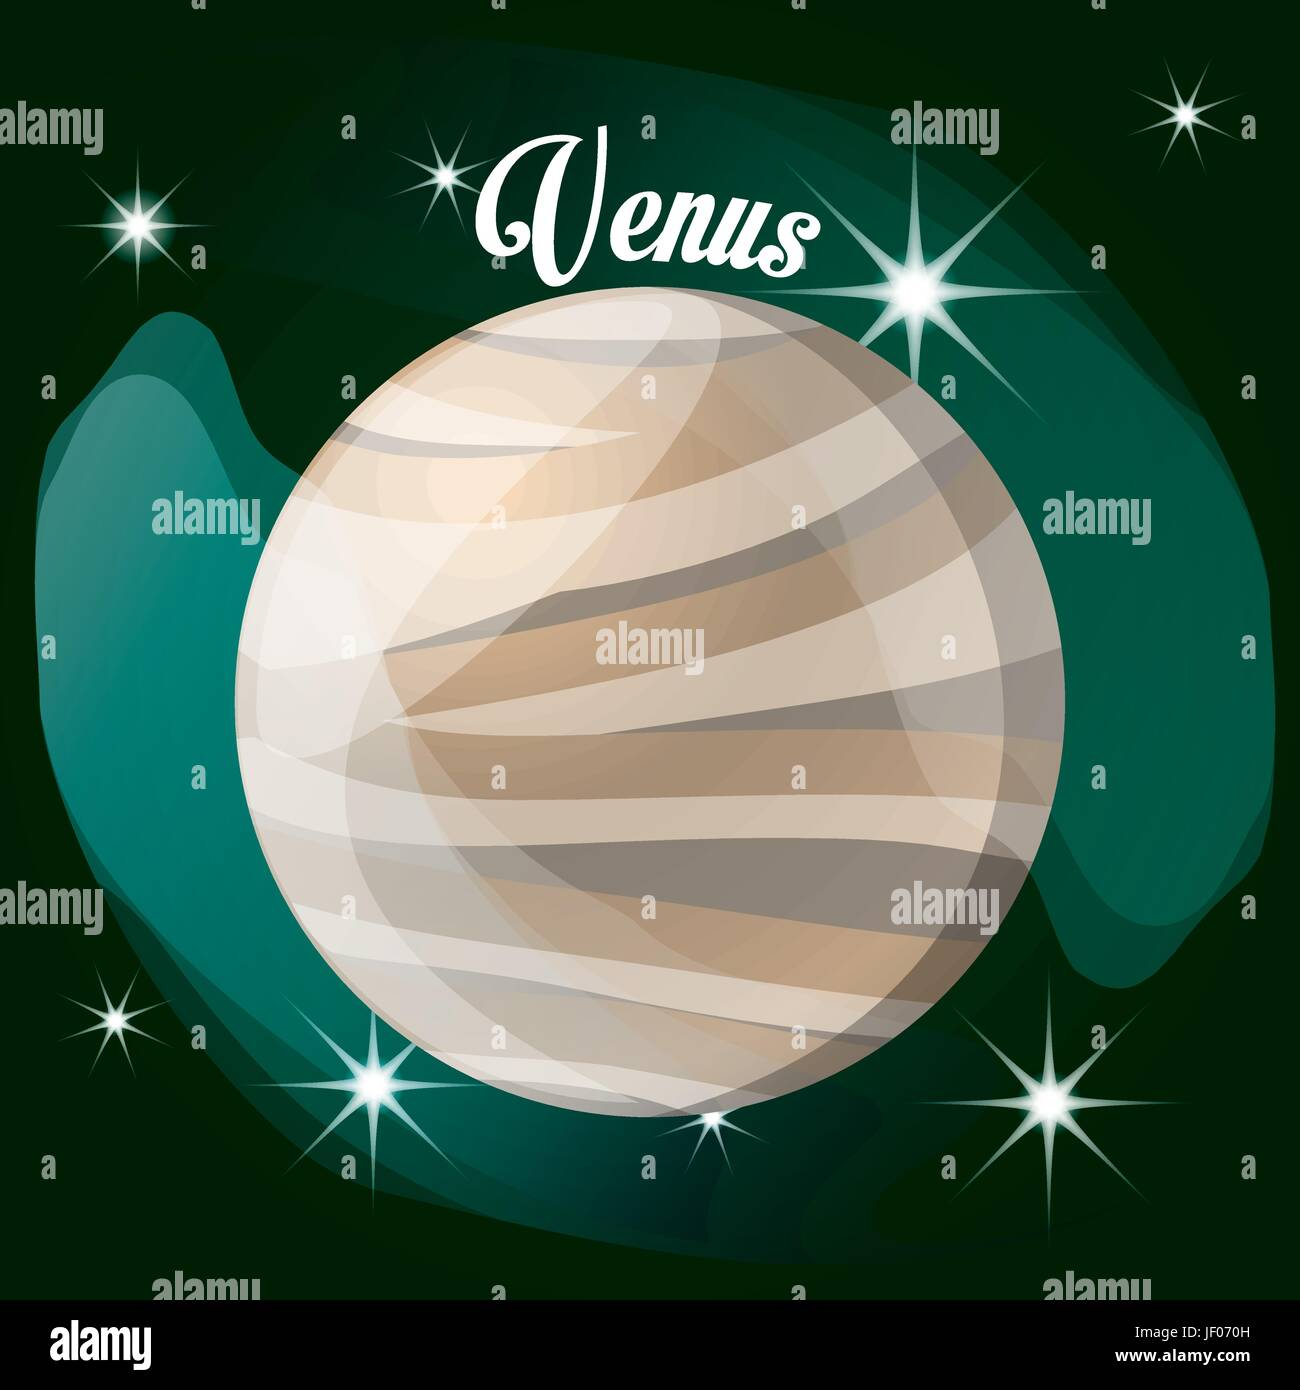 venus planet in the solar system creation - Stock Image